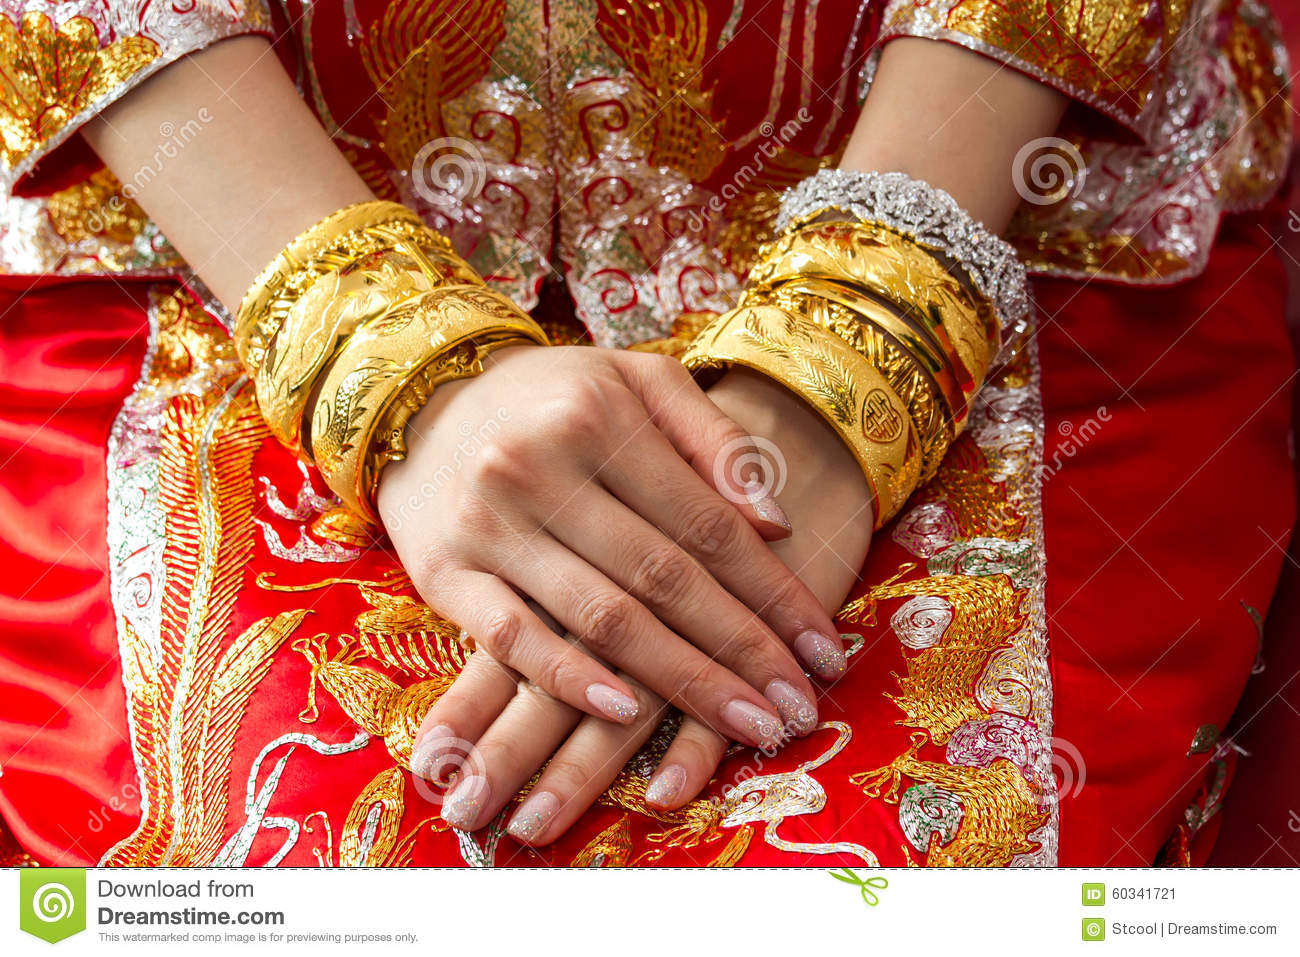 ancient chinese wedding rich poor The shang dynasty (c1600-1046 bce he also began government-funded social programs for the poor bone workshops in ancient china were industrial centers where artisans created objects from bone and stone for ceremonial or decorative purposes.